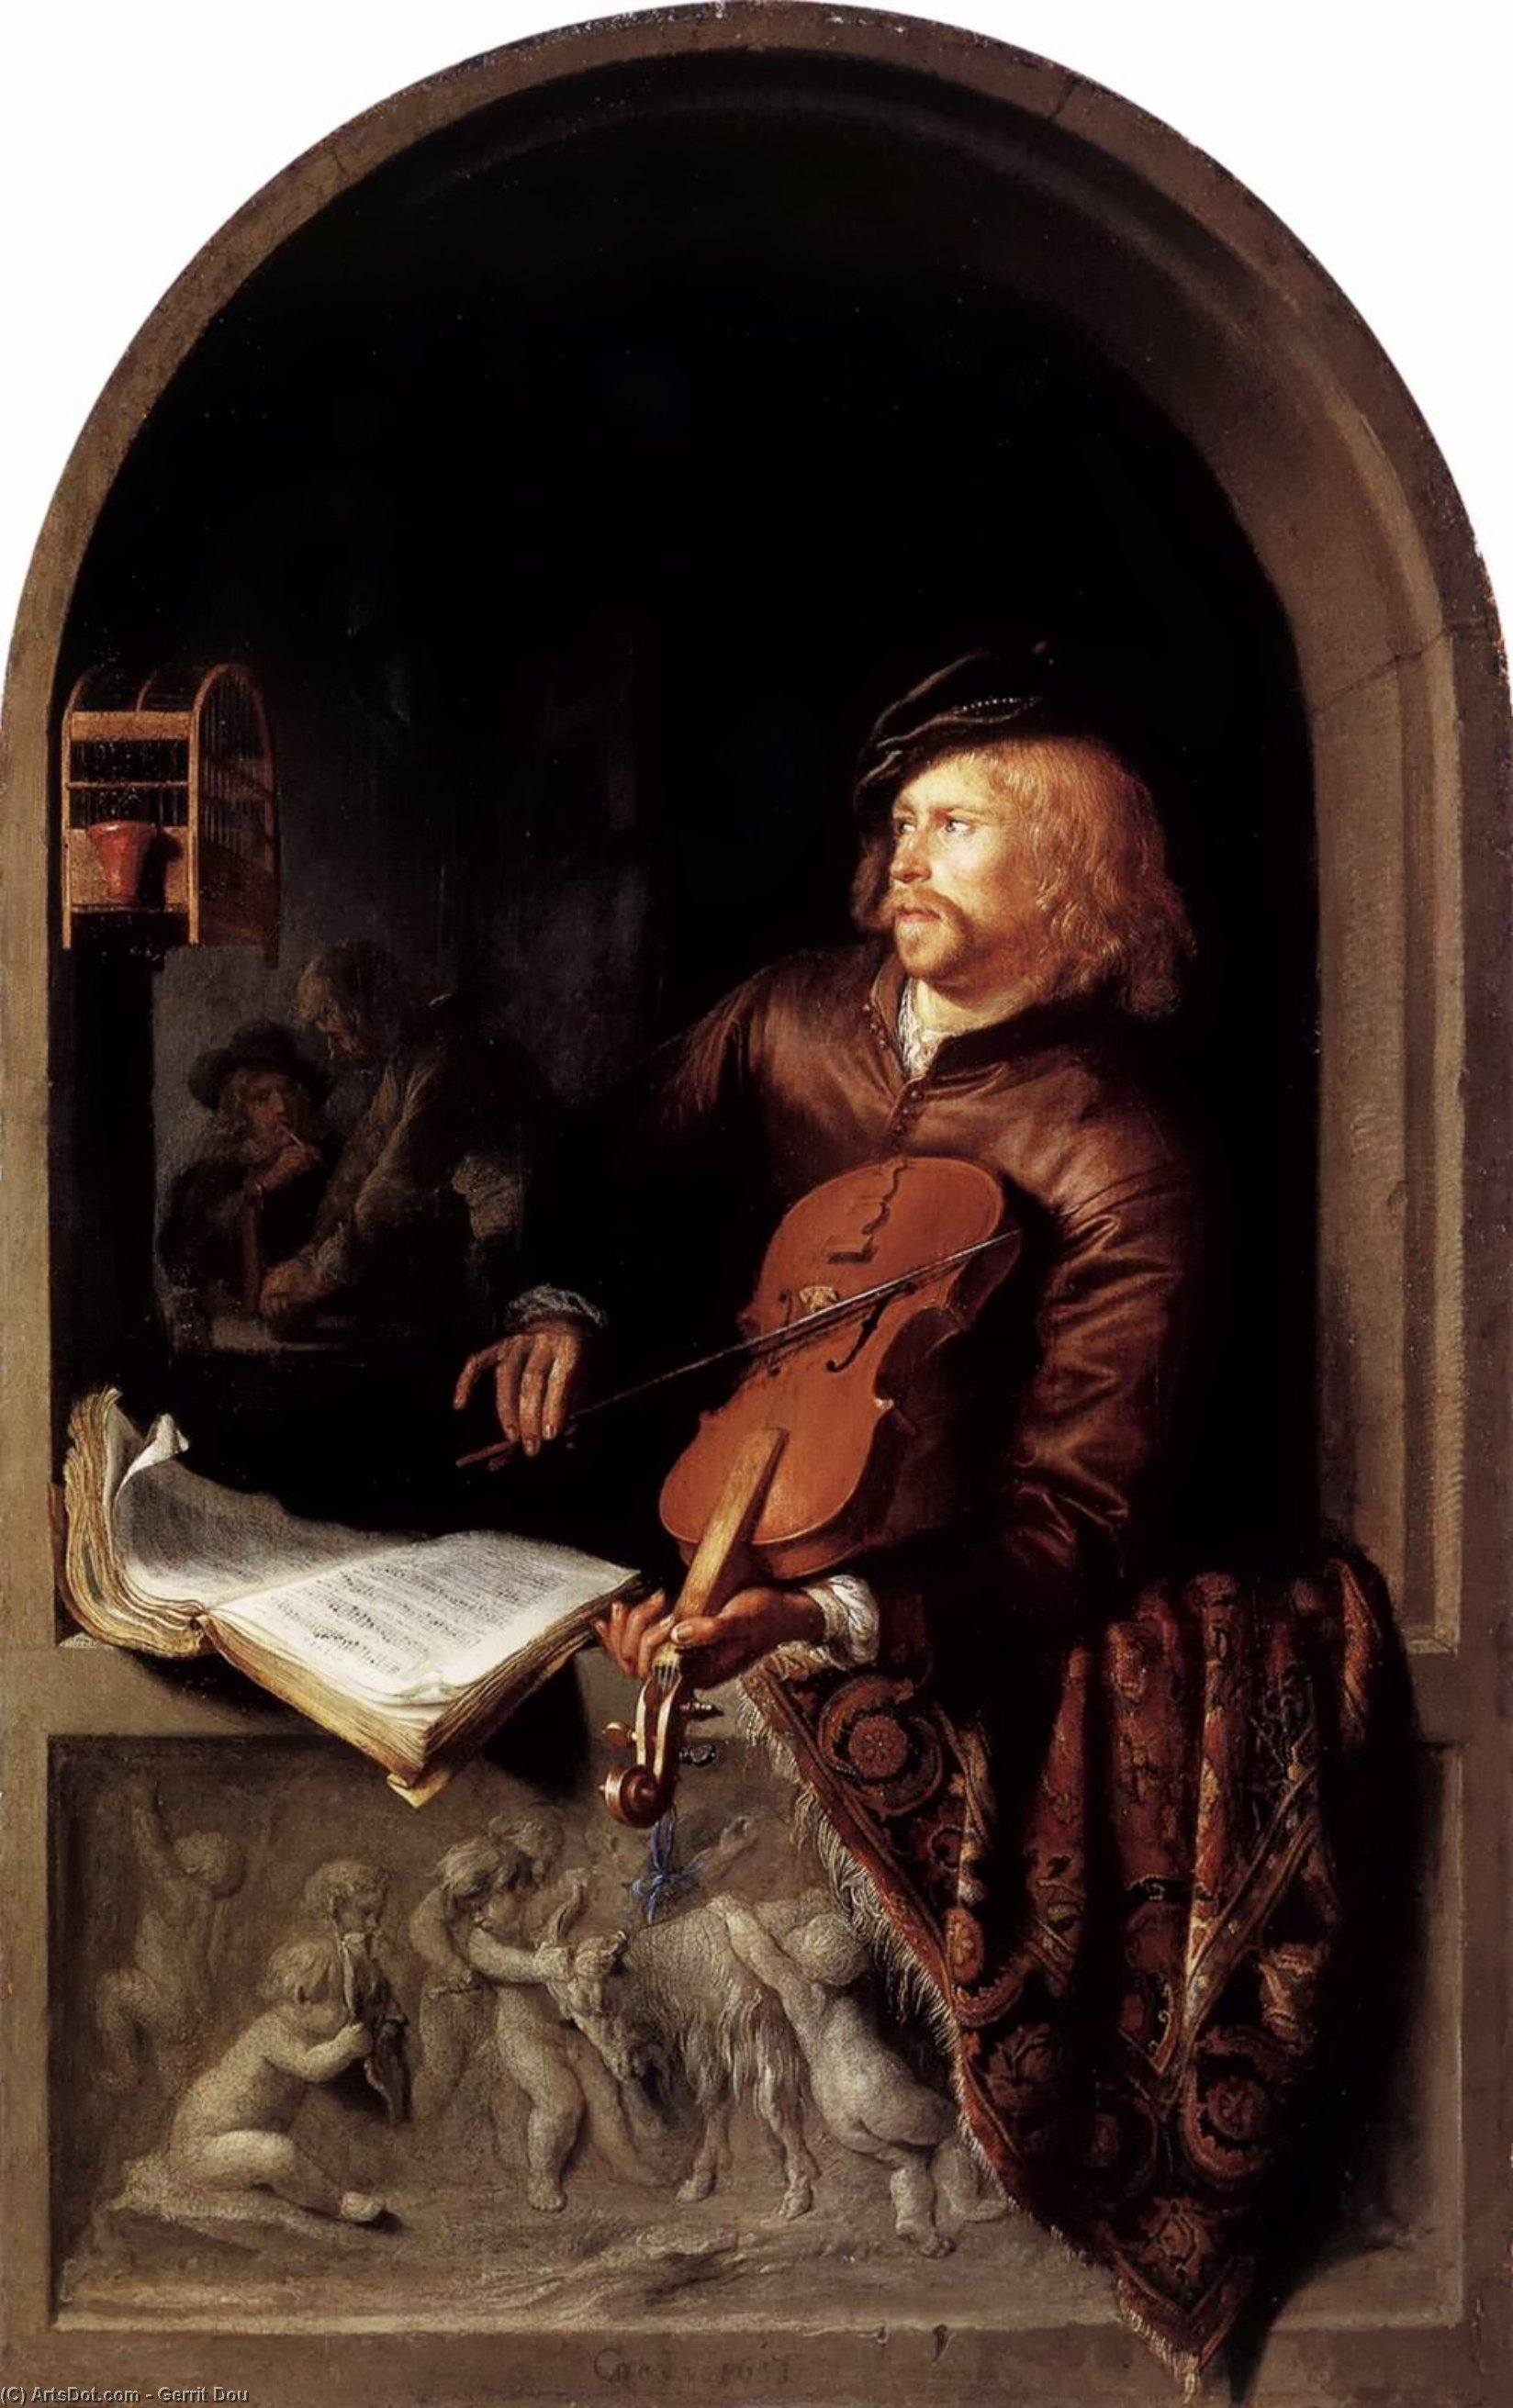 Violon Player, Oil On Panel by Gerrit Dou (1613-1675, Netherlands)